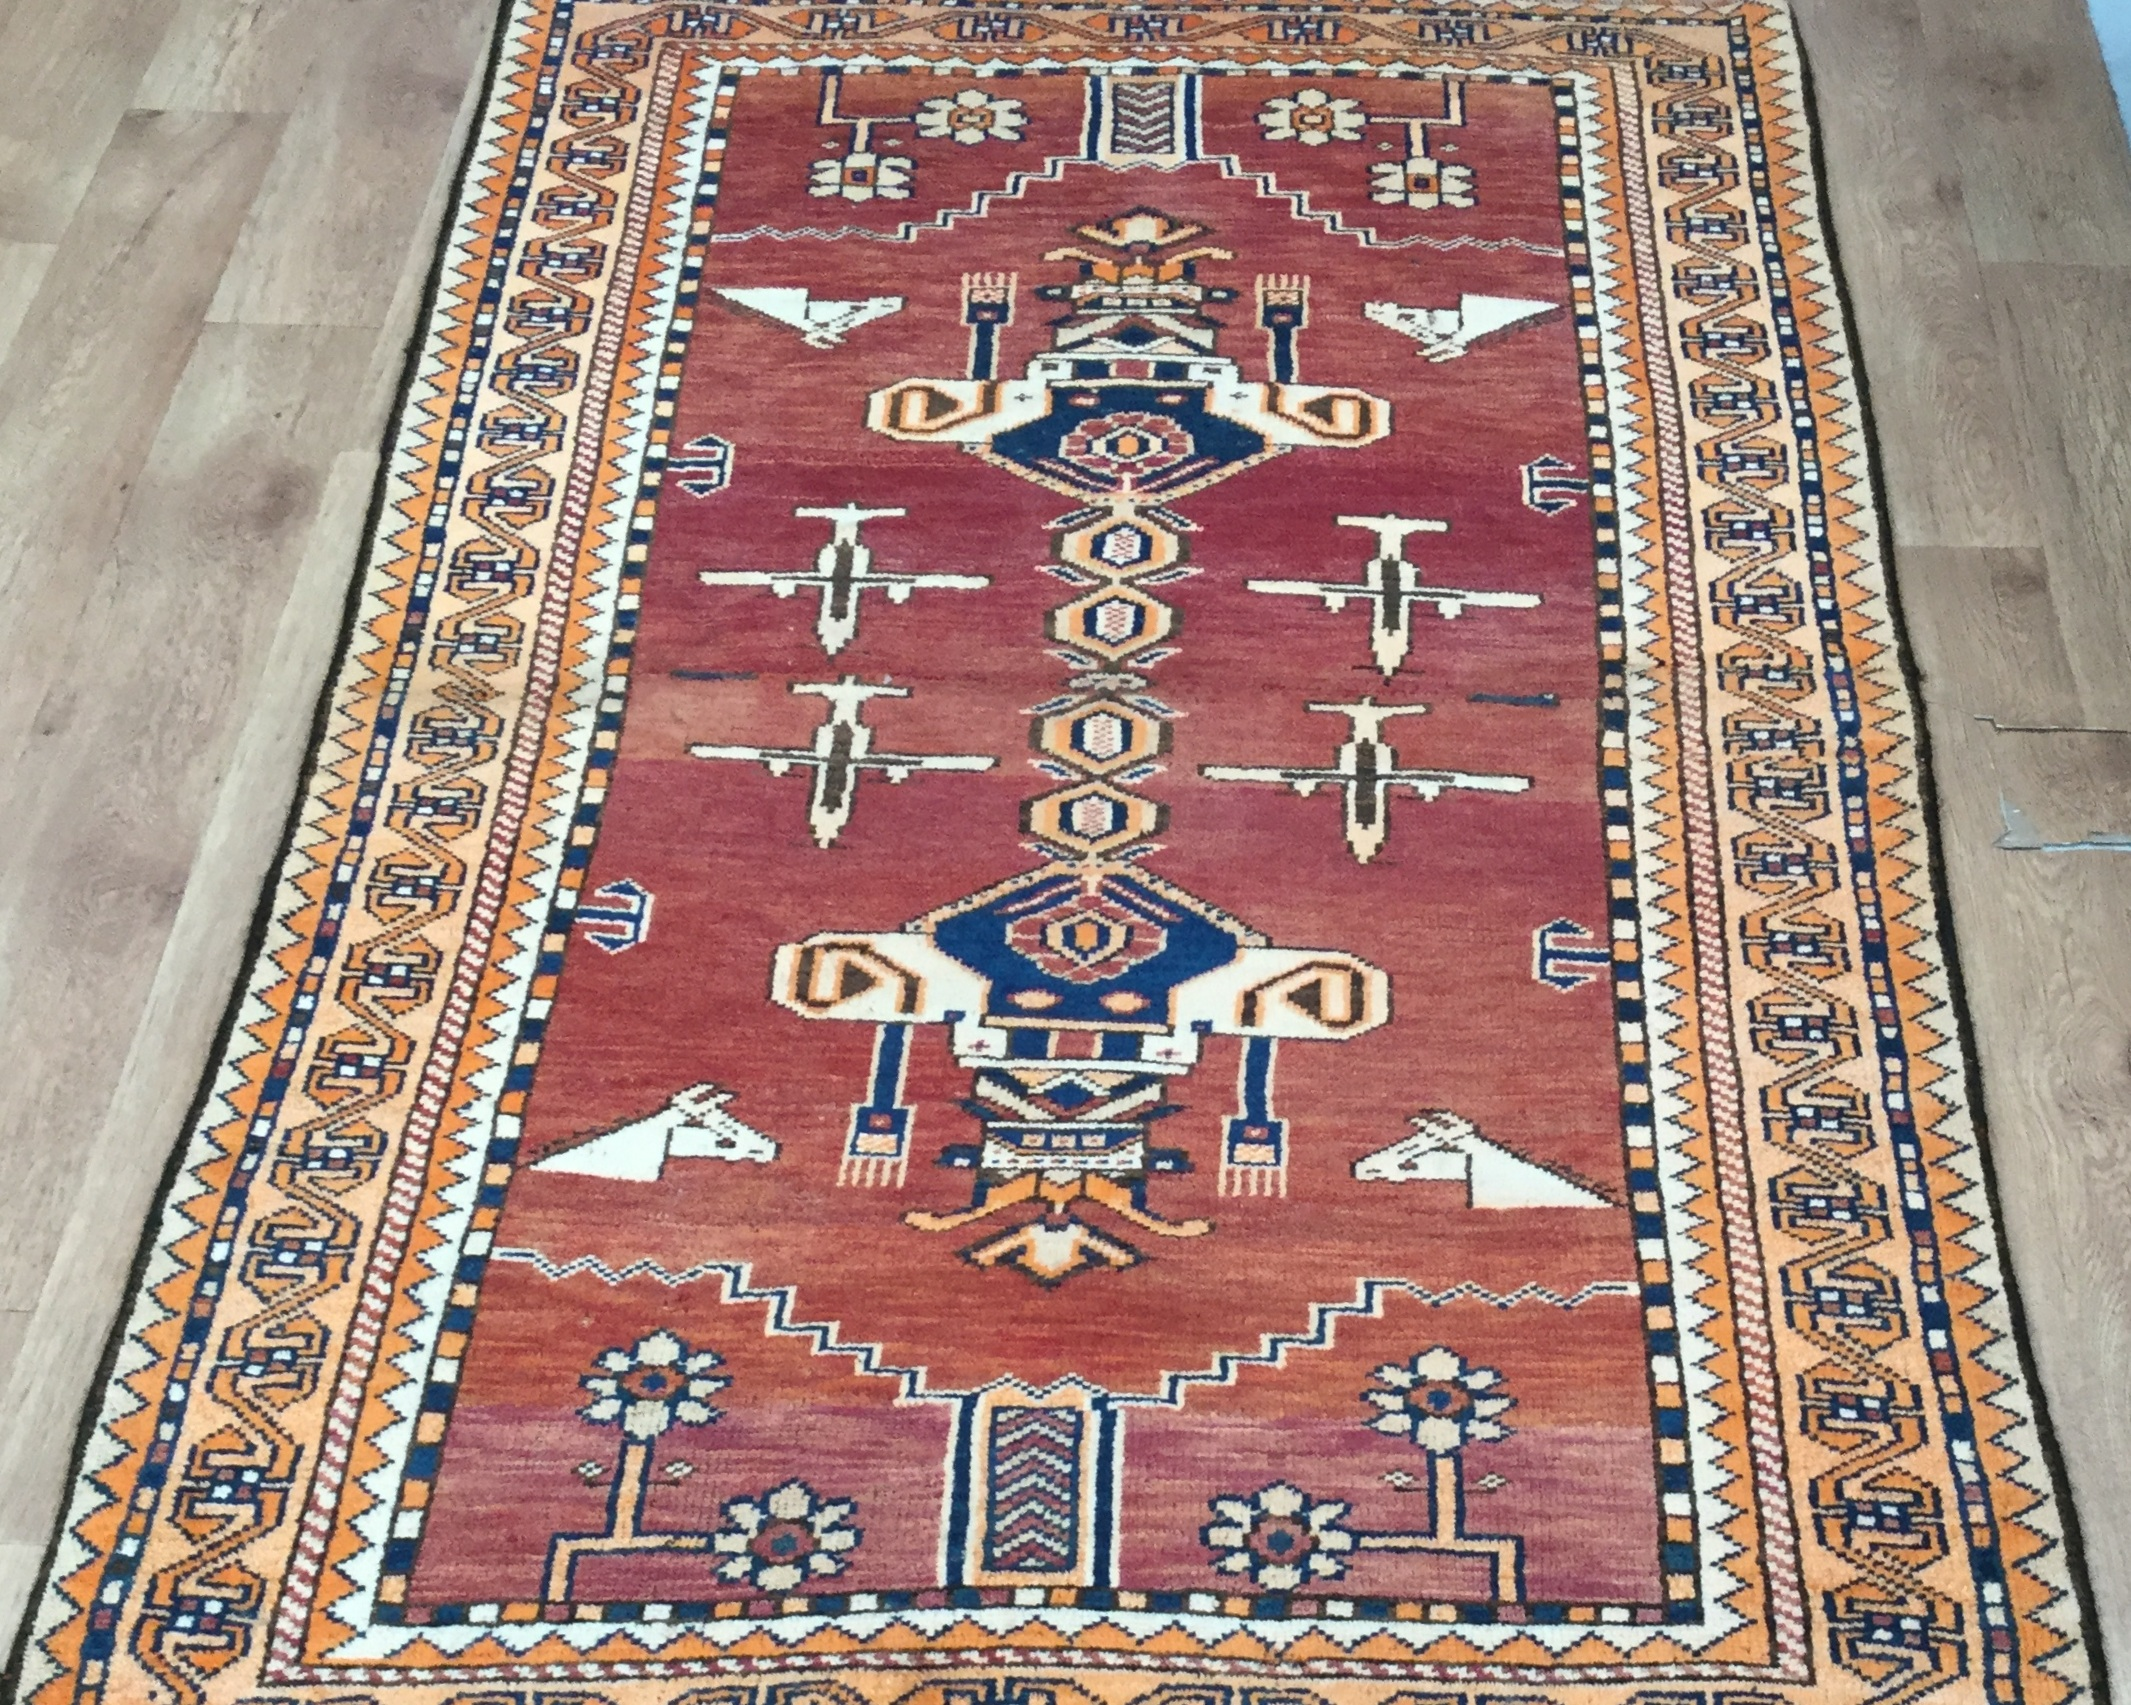 Afghan Kazak    Size Measurements: 190cm x 113cm